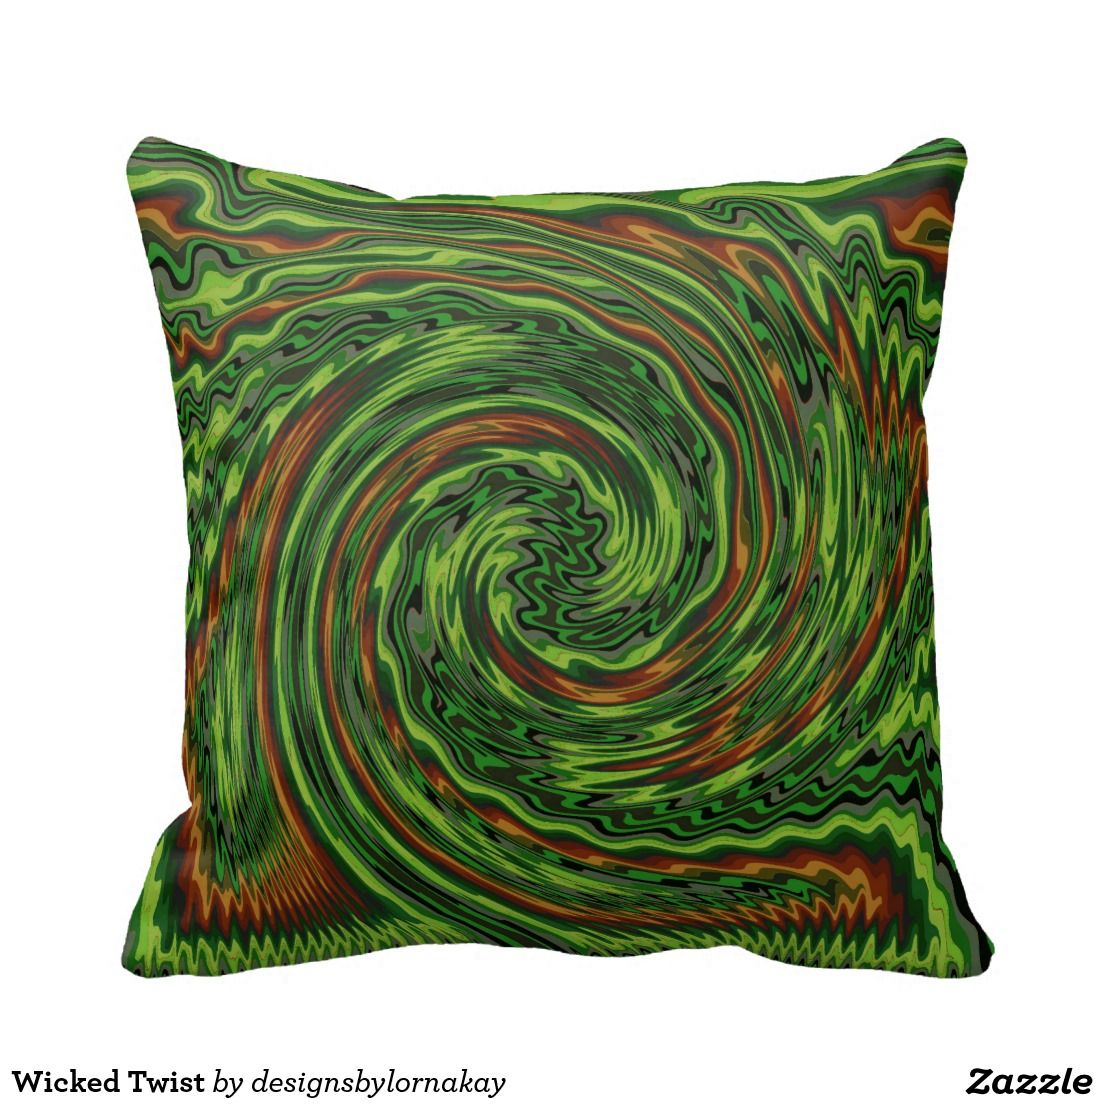 Wicked Twist Pillows http://www.zazzle.com/wicked_twist_pillows-189064041639508036?rf=238588924226571373